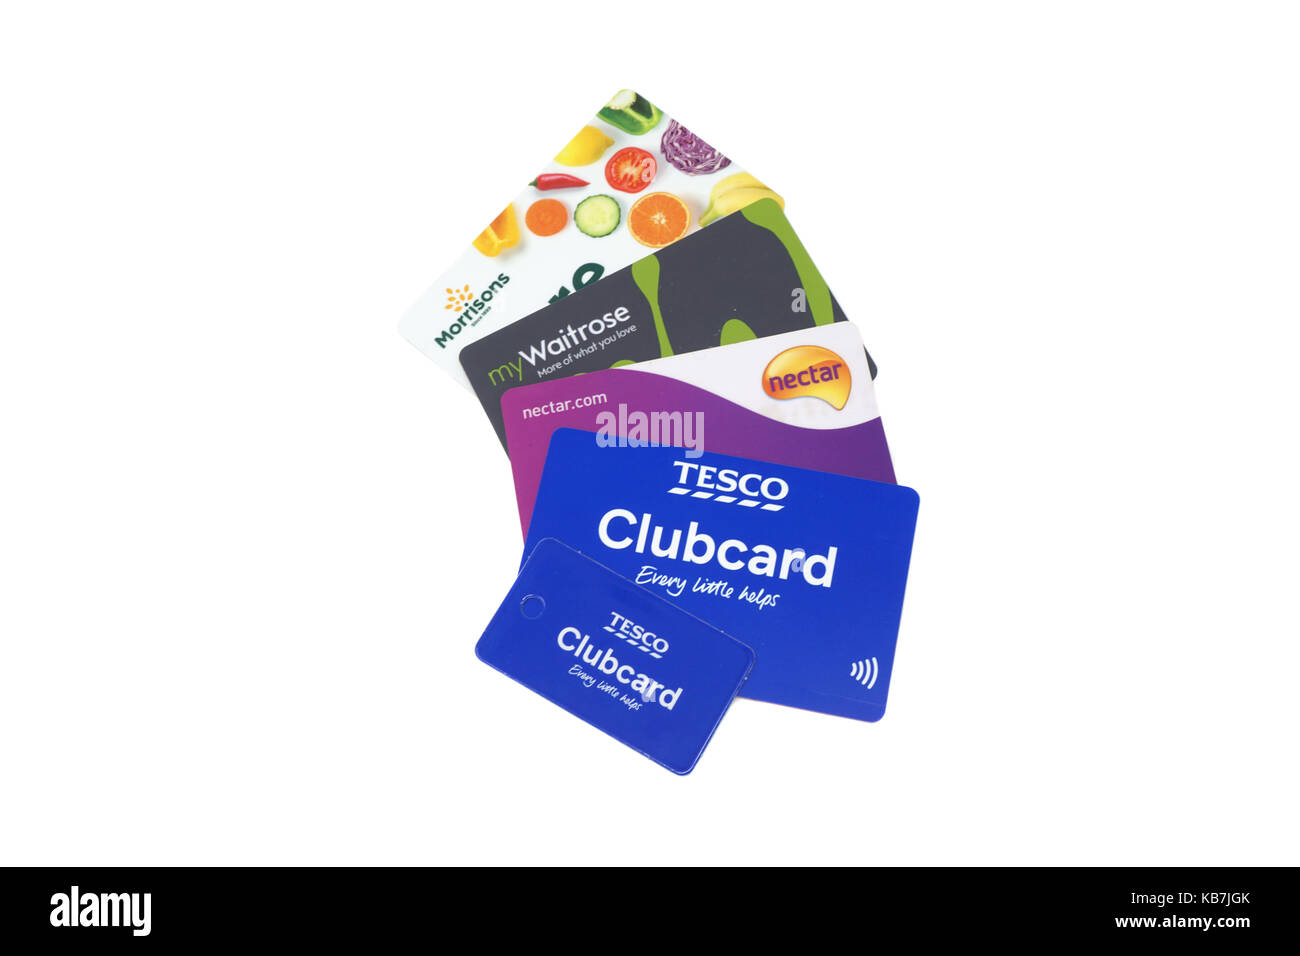 Morrisons Supermarket Cut Out Stock Images & Pictures - Alamy